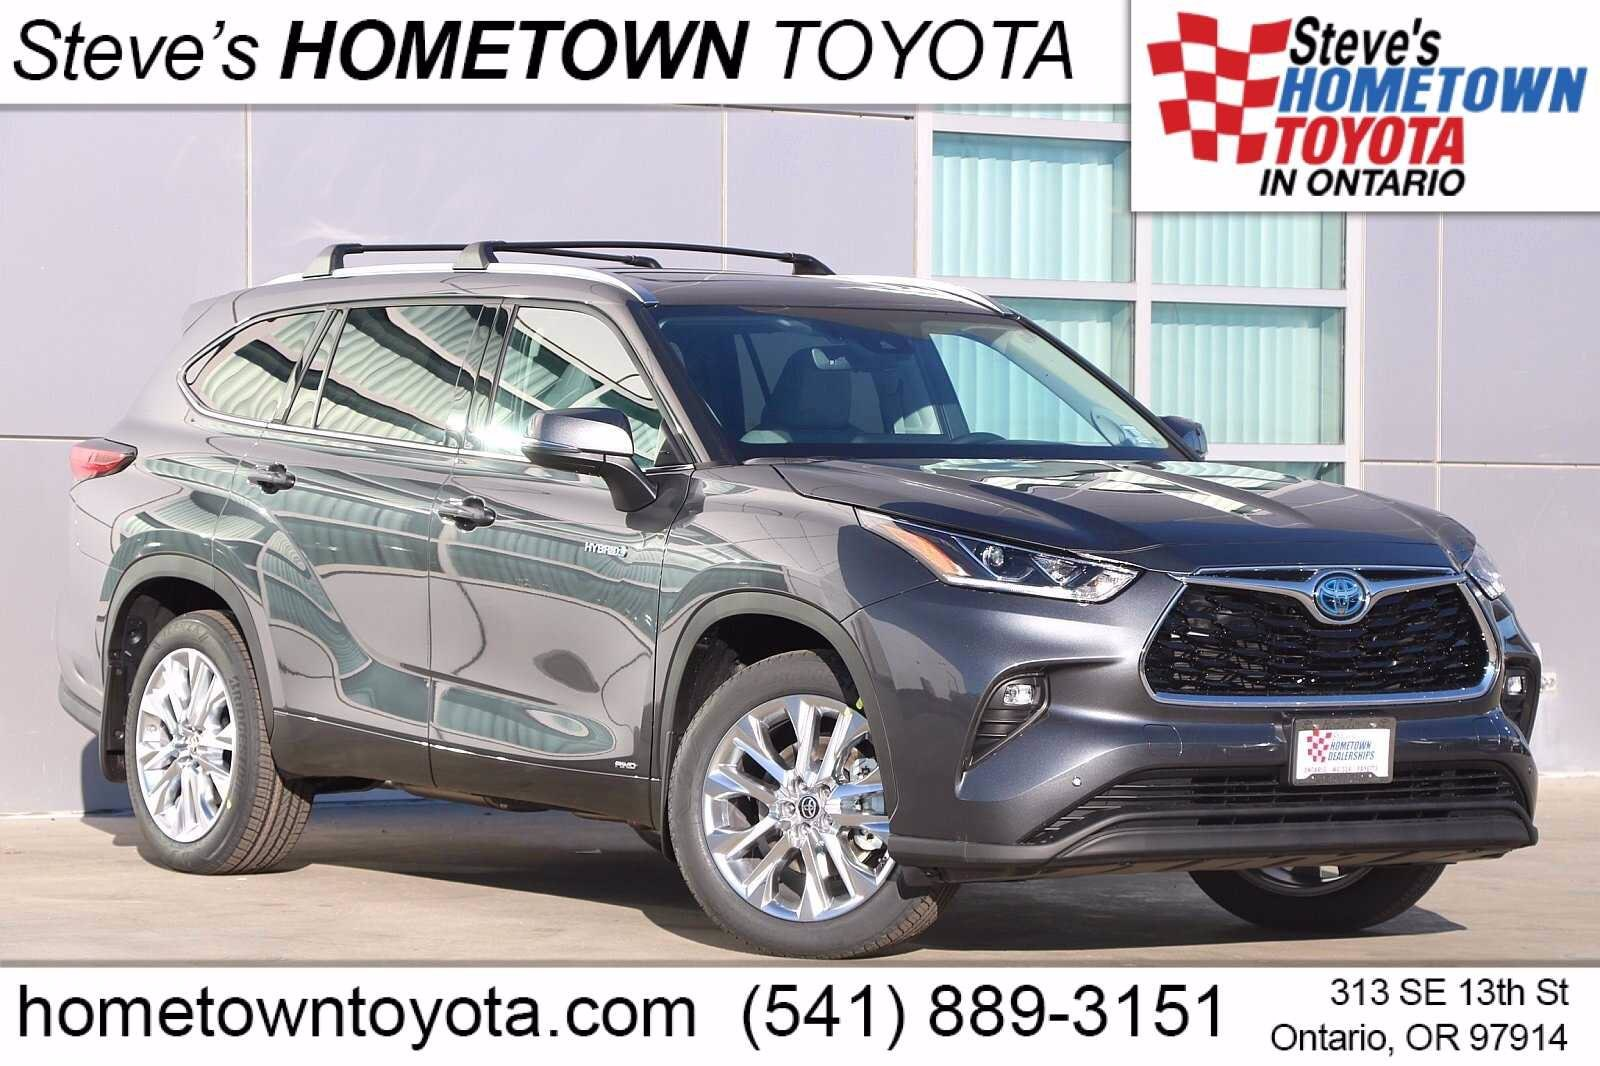 New 2021 Toyota Highlander Hybrid For Sale At Hometown Toyota Vin 5tdxbrch5ms521247